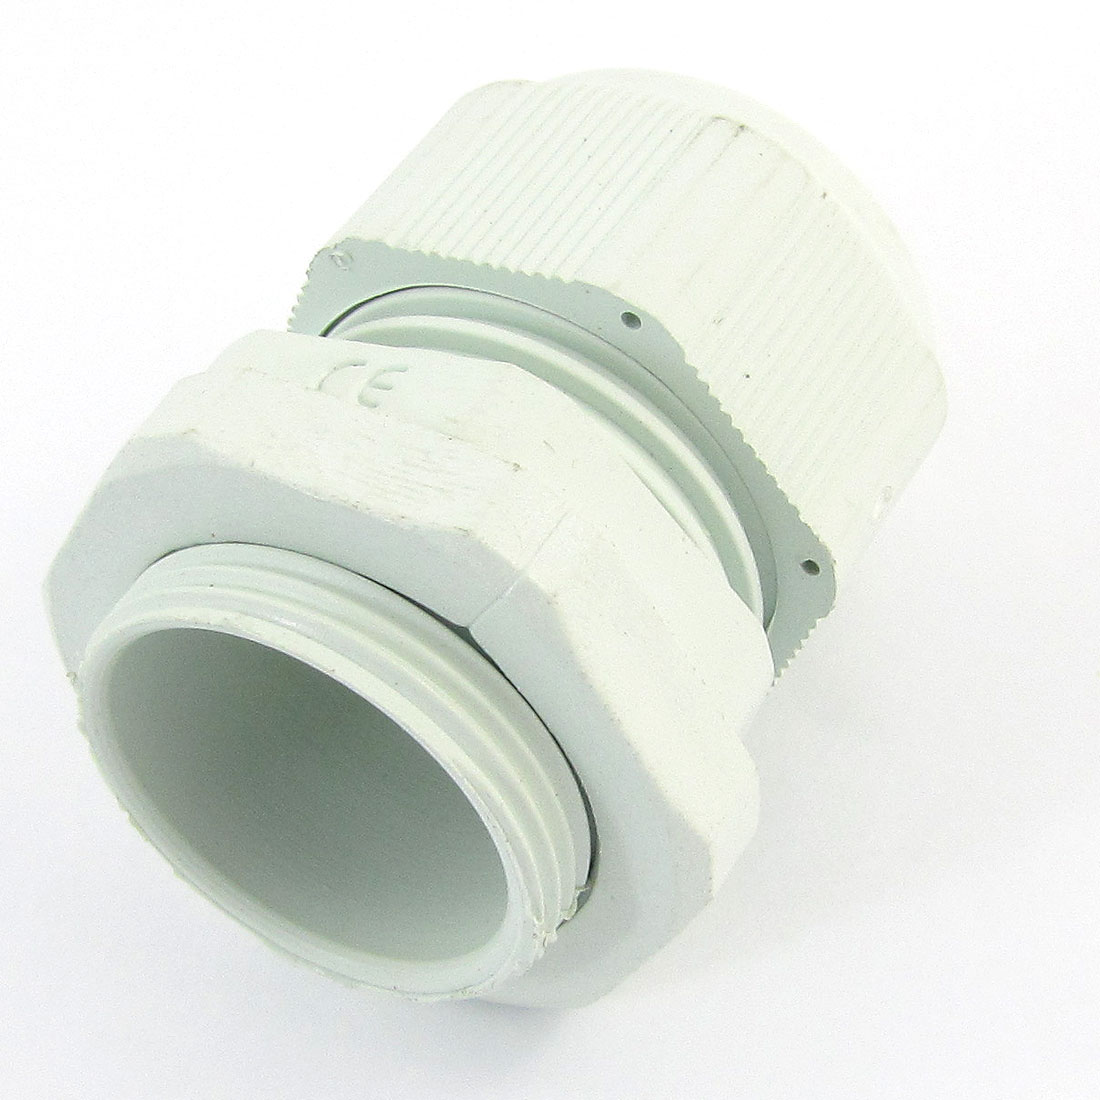 White Plastic Waterproof Protective Cables Glands Connector Joints PG21